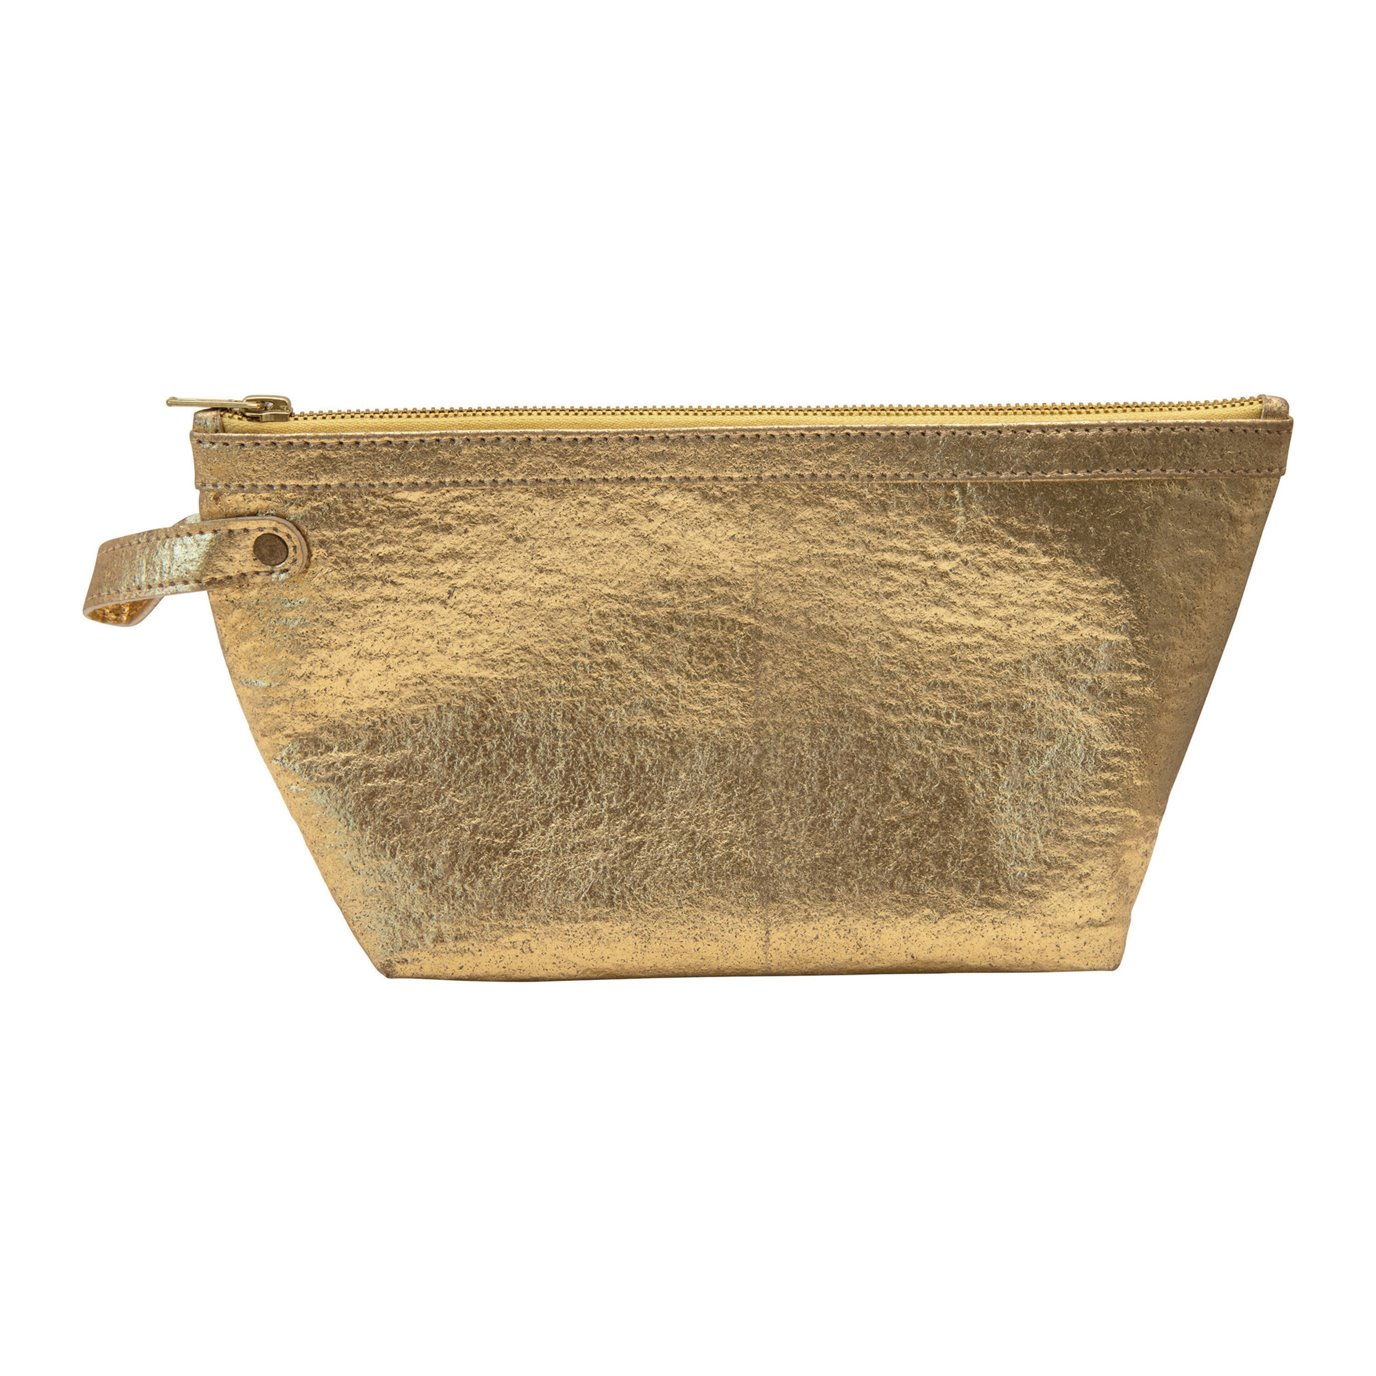 Recycled Leather Zip Pouch, Gold Color